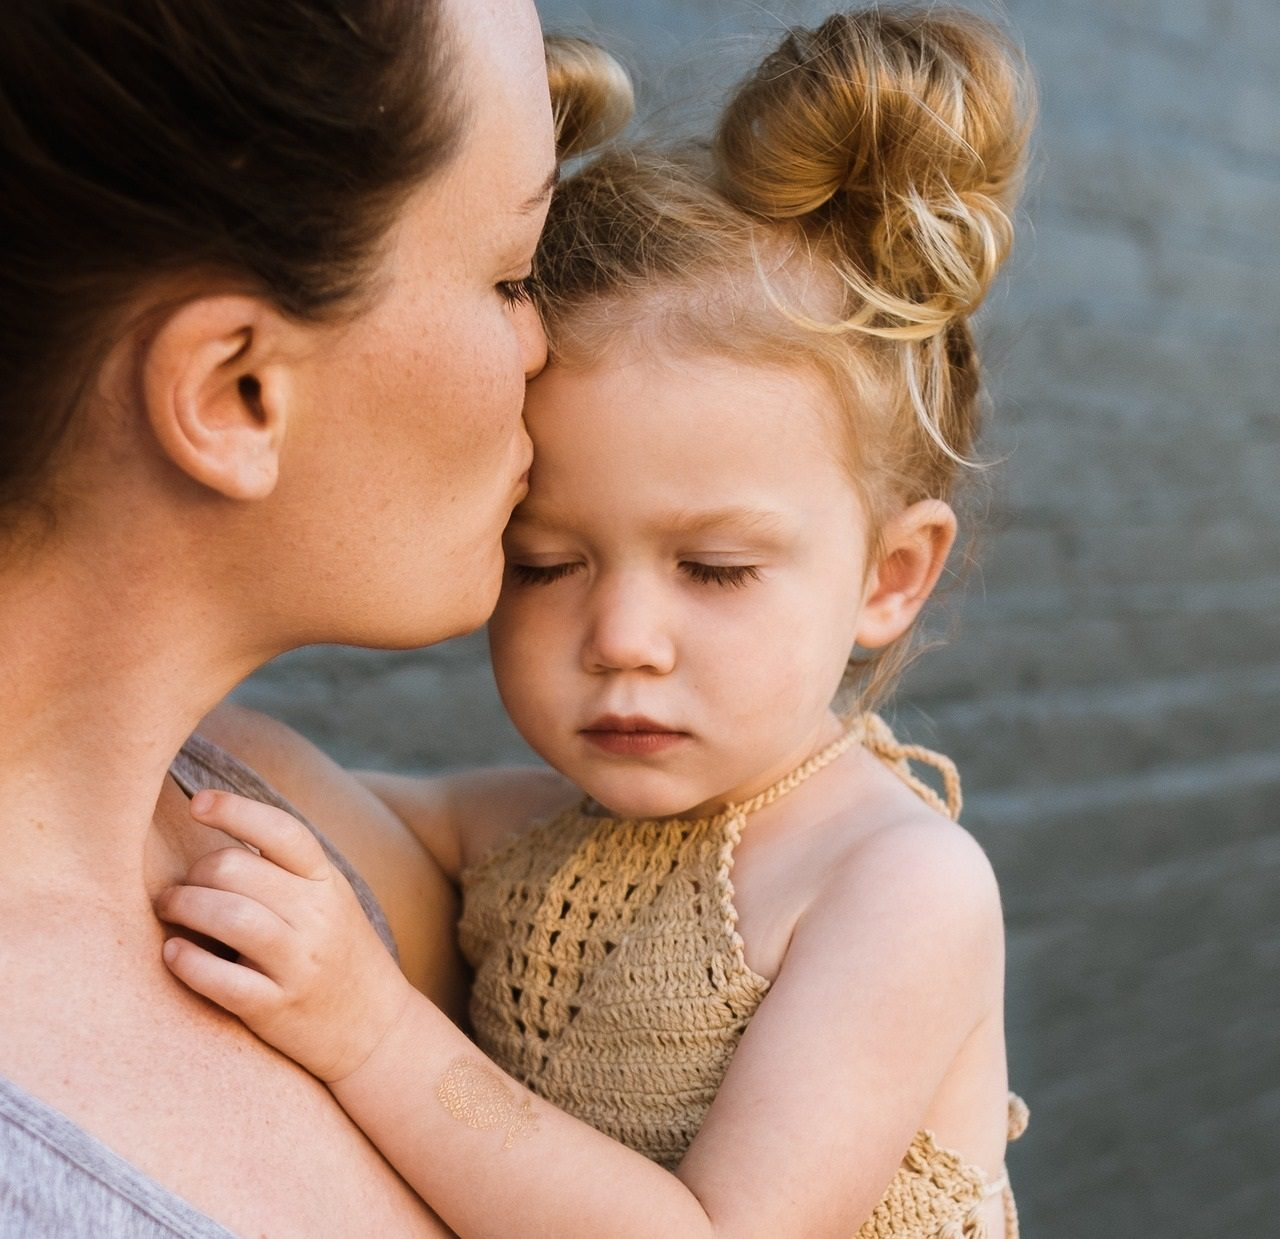 How to stop Temper Tantrums with Compassion